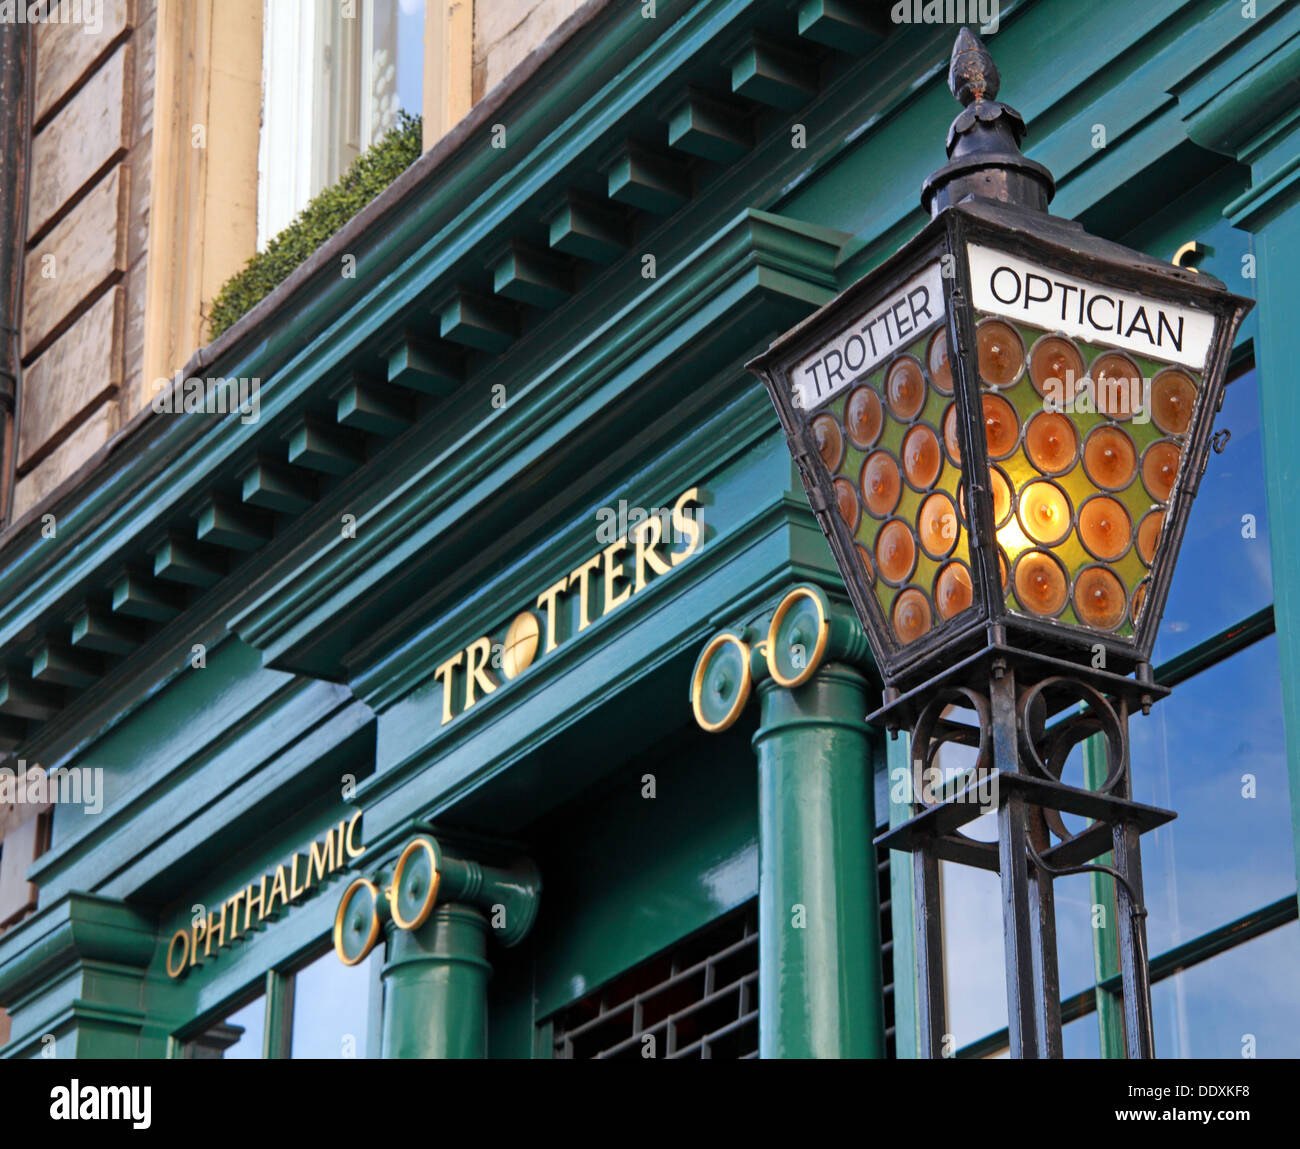 Trotters Optician,George St, New Town, Edinburgh,Scotland,UK - Stock Image